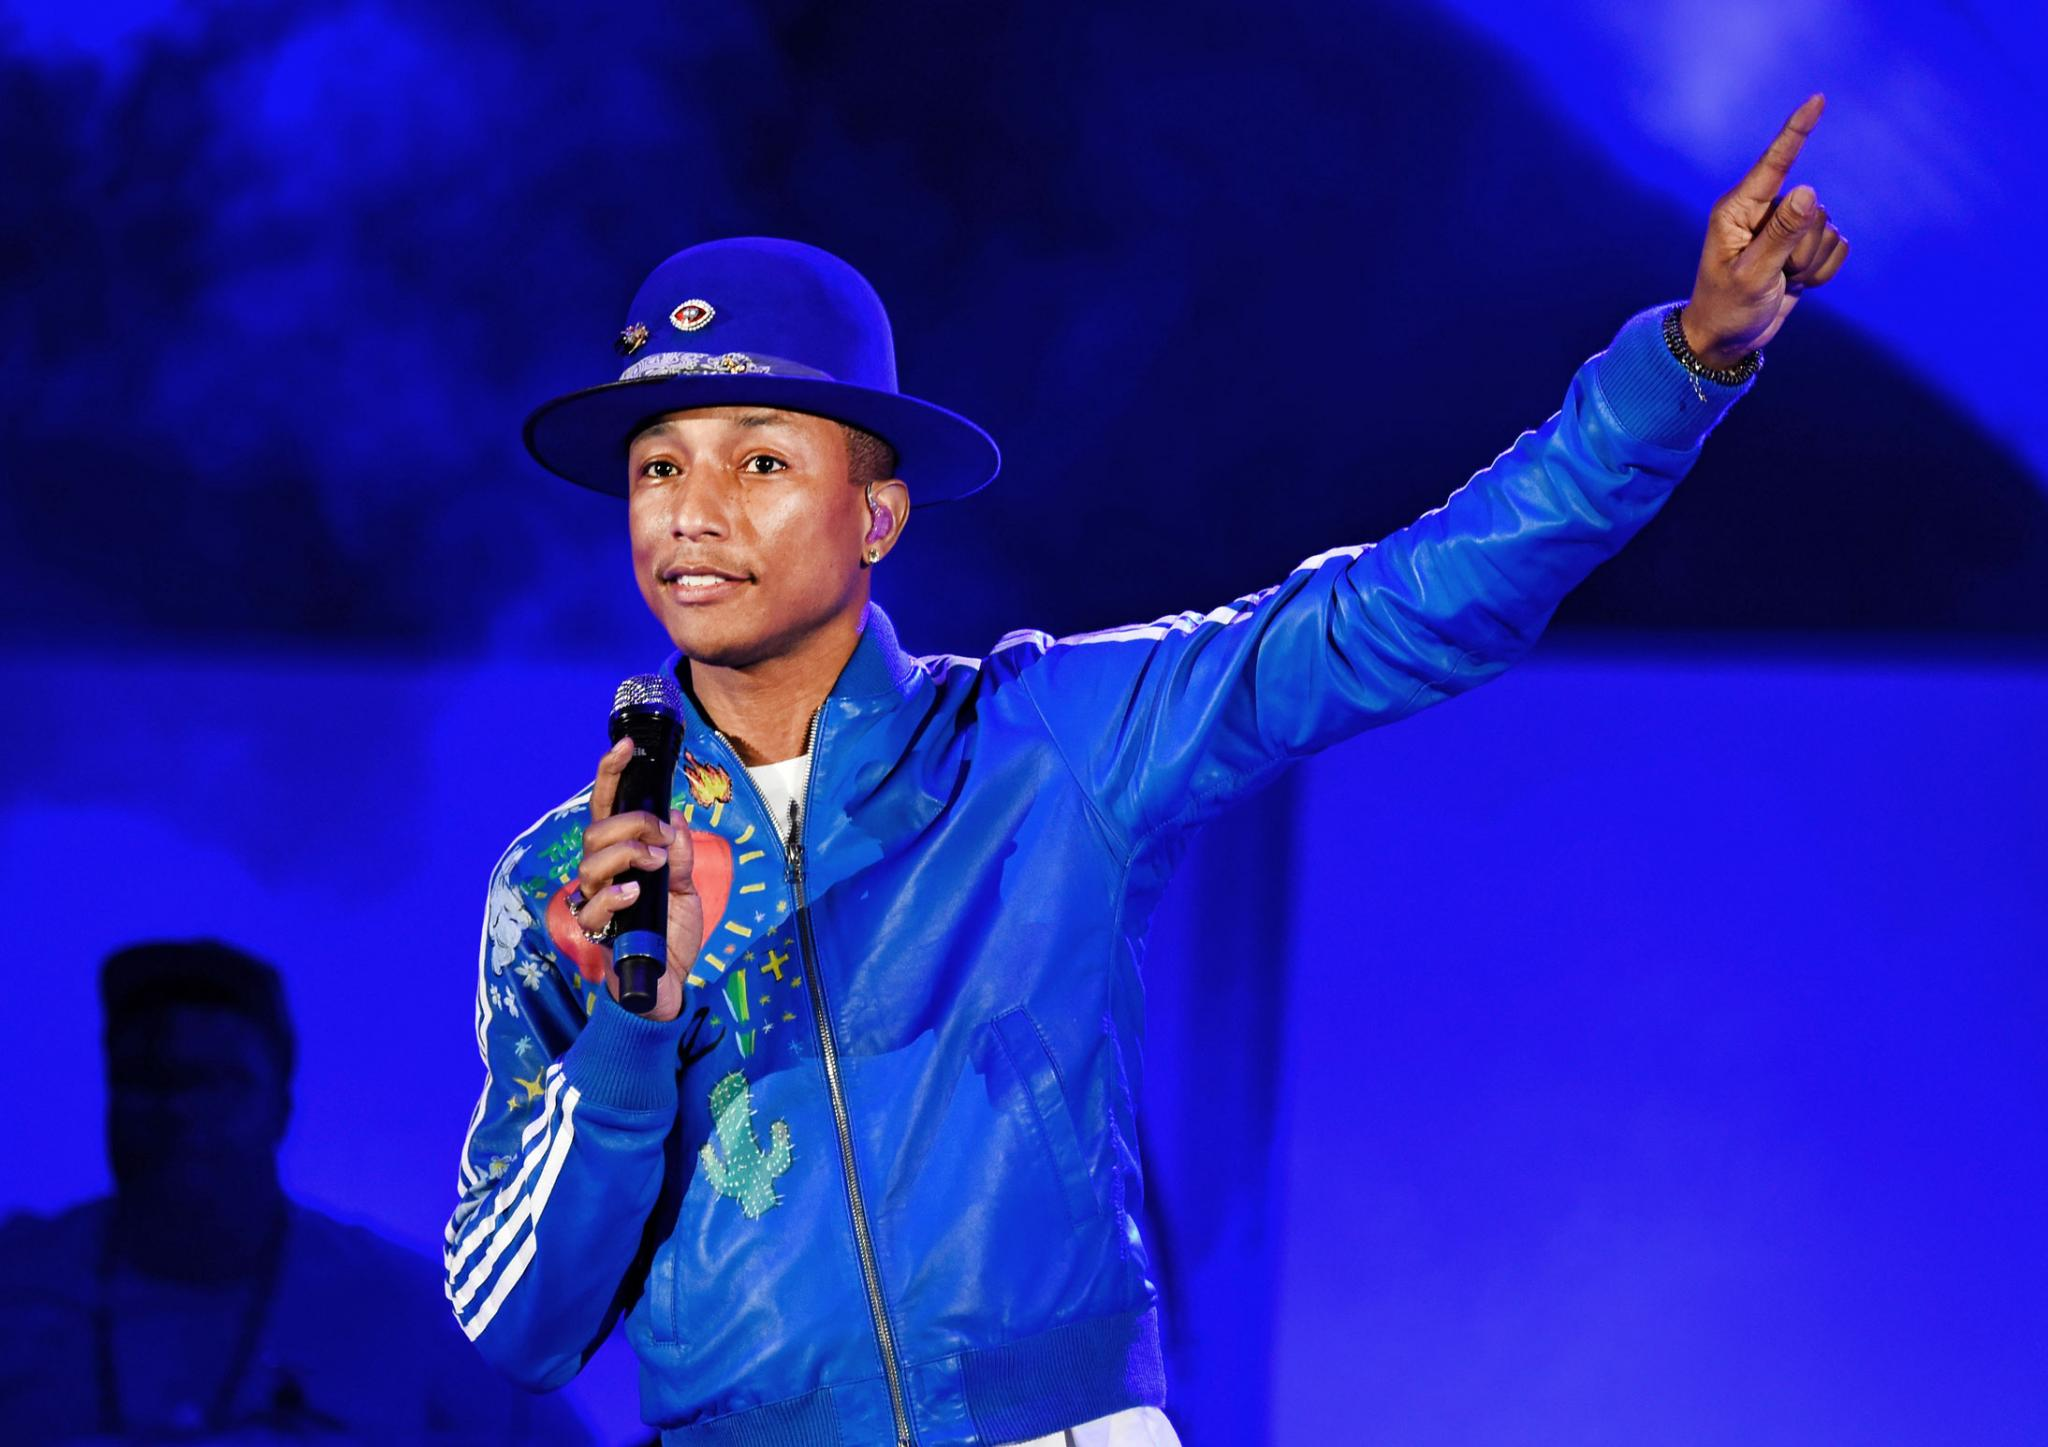 pharrell-williams-performs-onstage-during-cbs-radios-we-can-survive-at-the-hollywood-bowl-presented-by-5-hour-energy-in-los-angeles